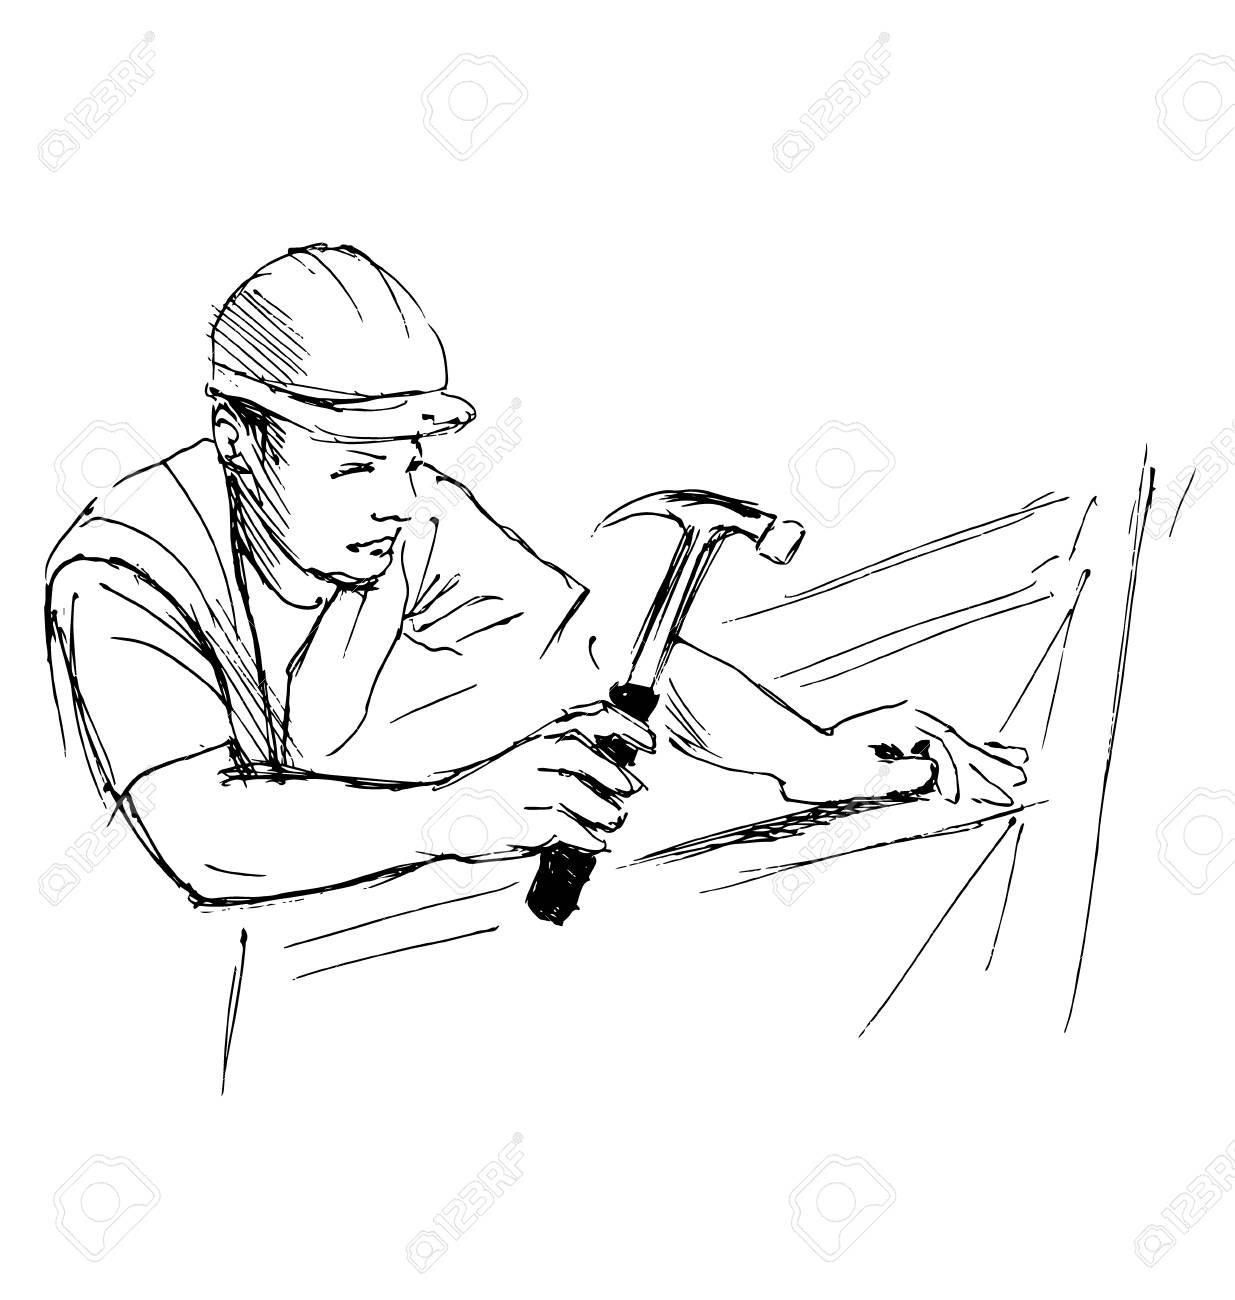 1235x1300 Hand Sketch Worker With Hammer. Vector Illustration Royalty Free